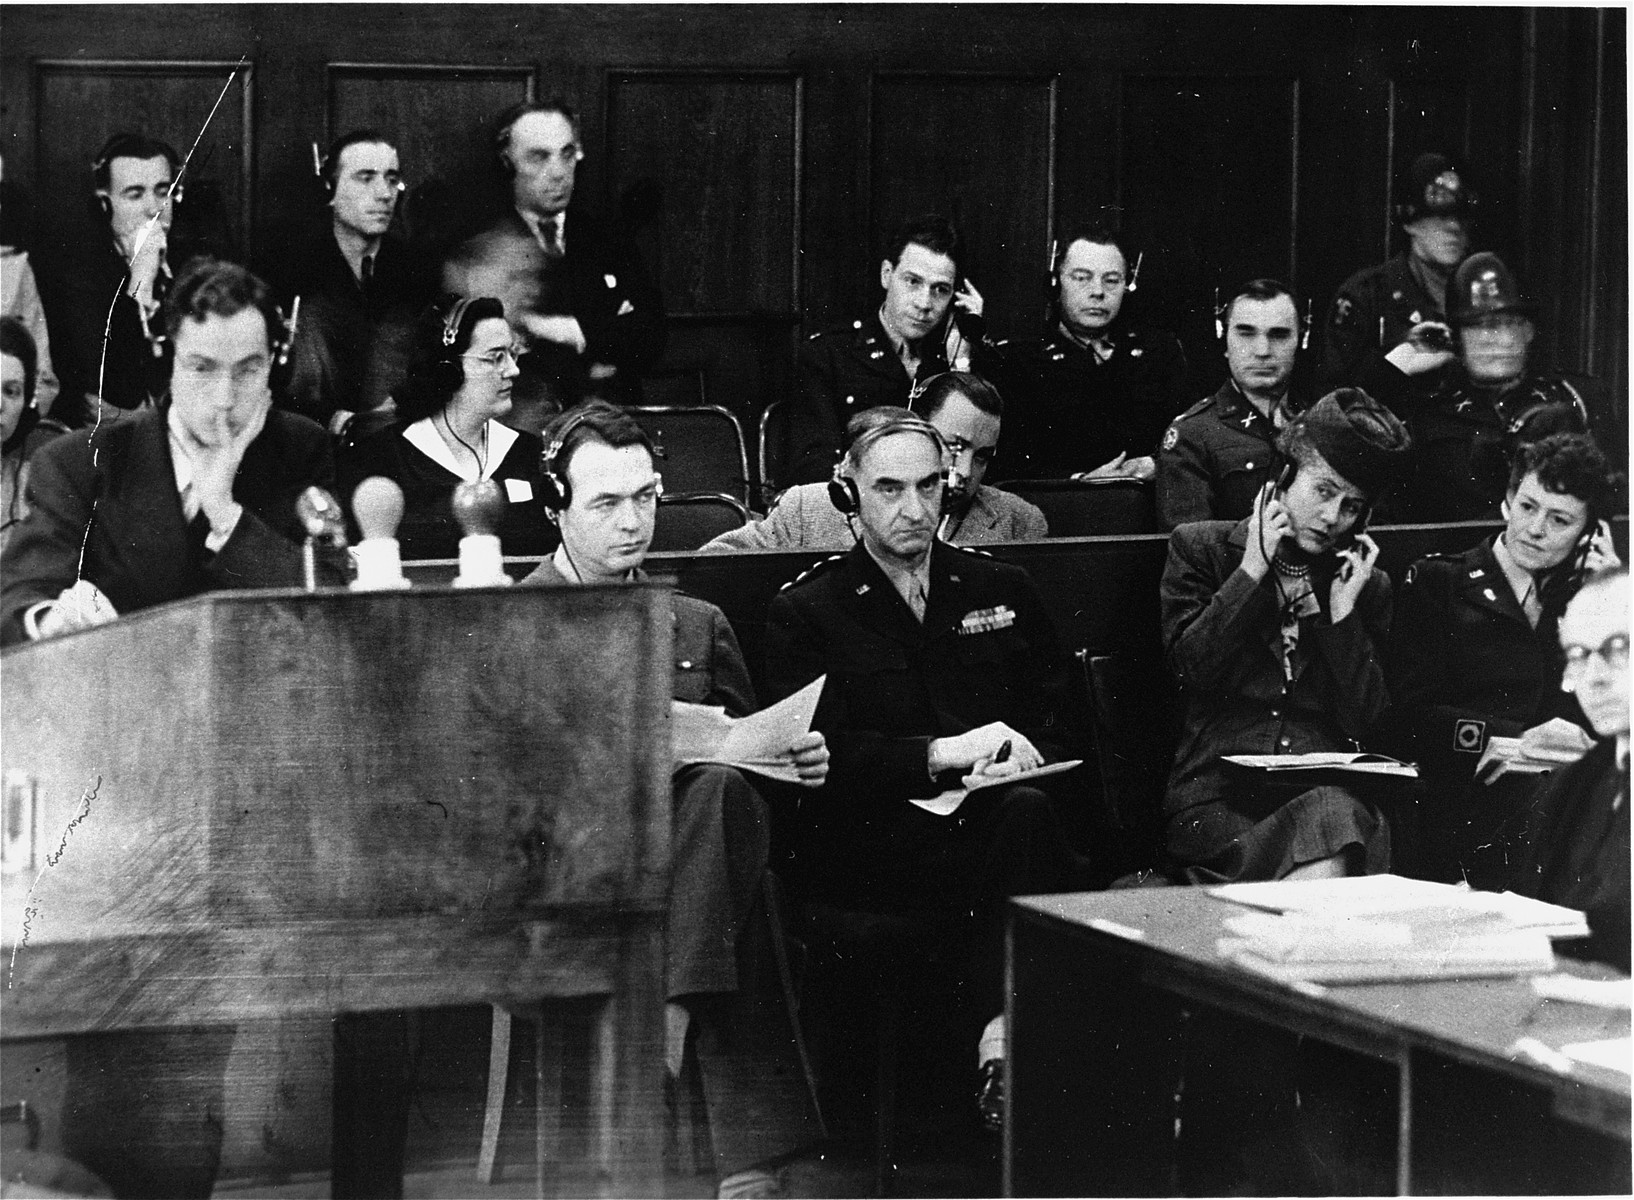 American prosecutor James M. McHaney (left) at the podium during the Pohl/WVHA trial.  Behind him from left to right are Brigadier General Telford Taylor, US Military Governor Lucius Clay, and Clay's wife.